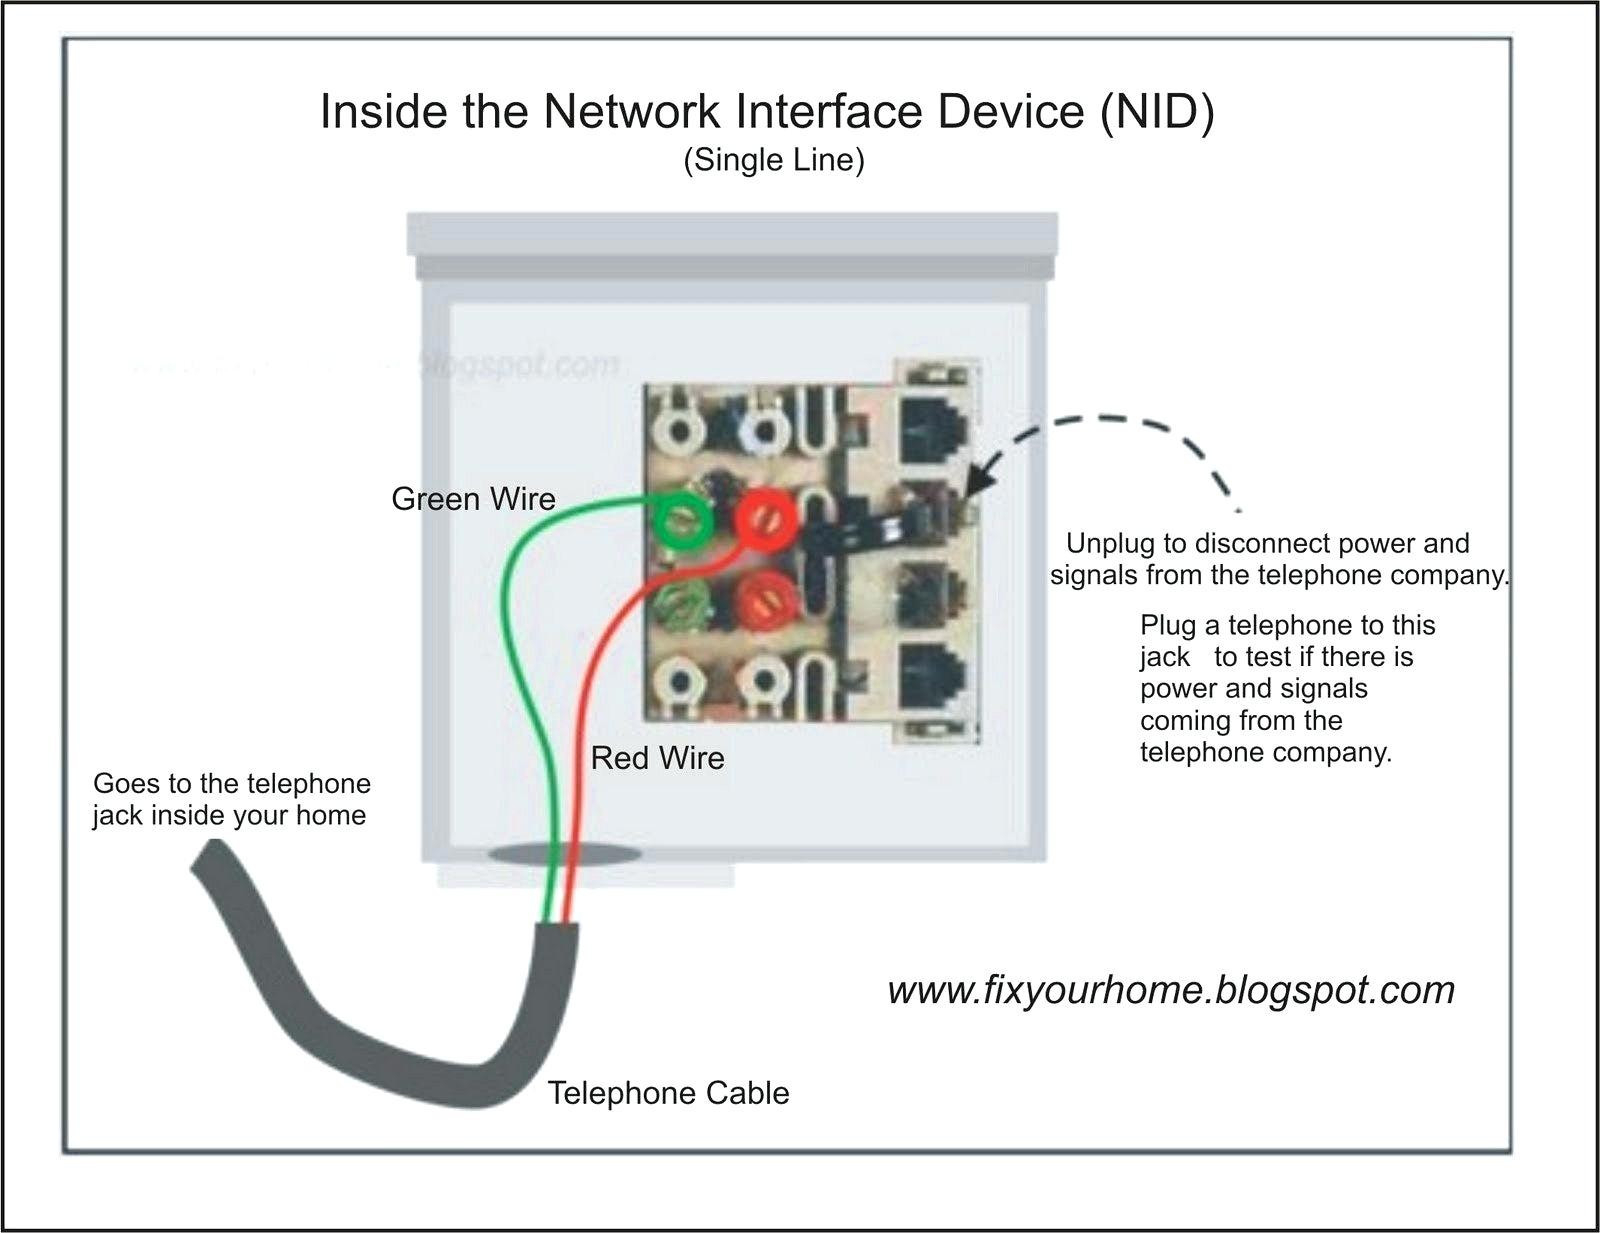 boat wiring diagram software Download-diagram wiring diagram for time warner cable phone inter at t u activate spectrum cable box colorful 12-i